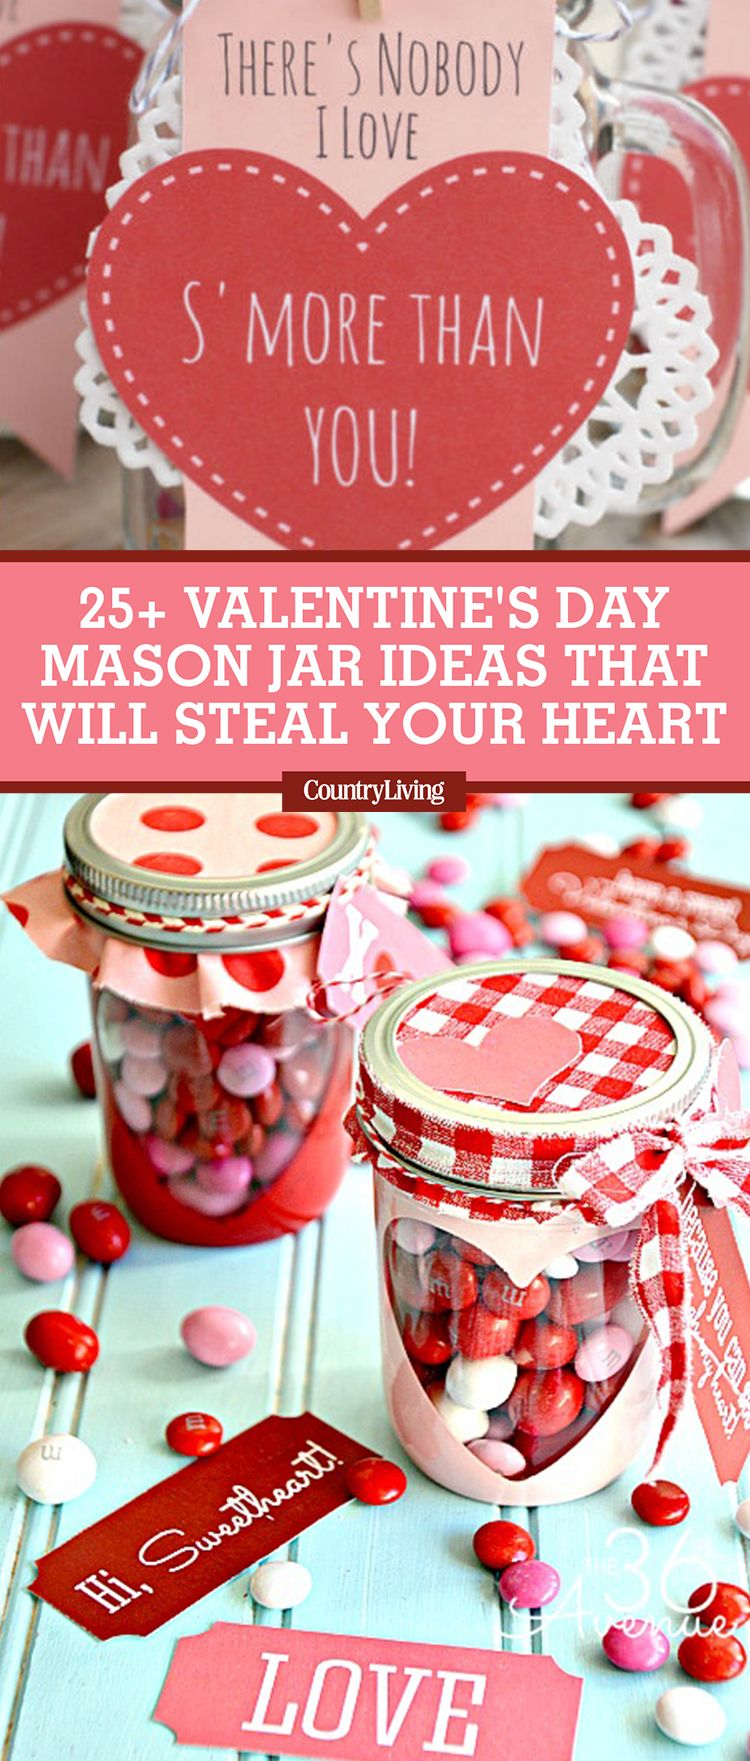 25 Cute Valentines Day Mason Jars Ideas -Valentine\'s Day Mason Jar ...